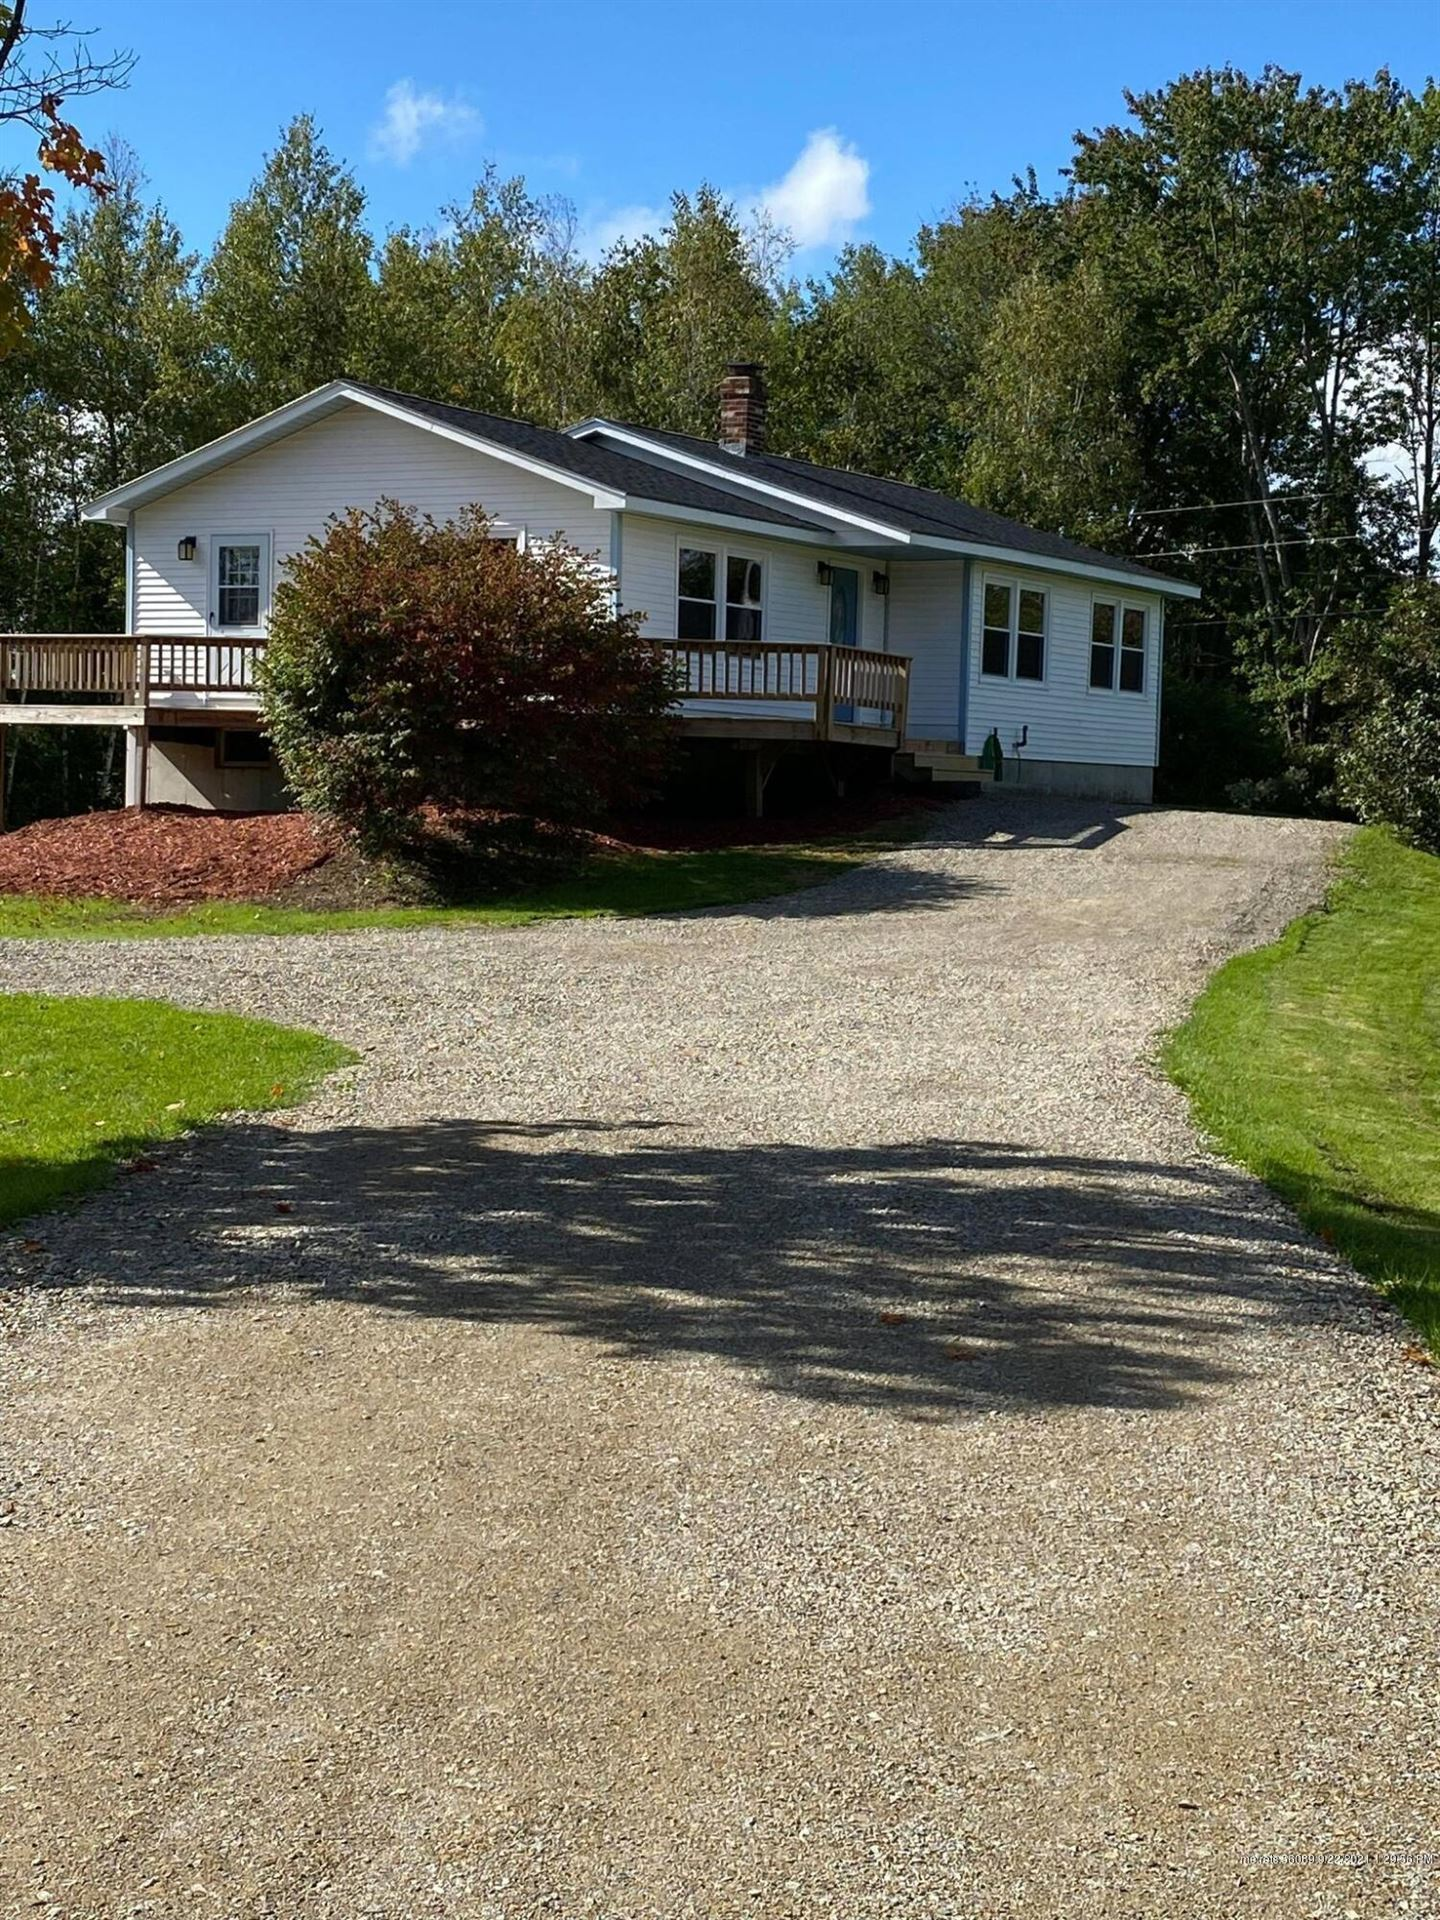 Photo of 364 Lower Detroit Road, Plymouth, ME 04969 (MLS # 1509655)